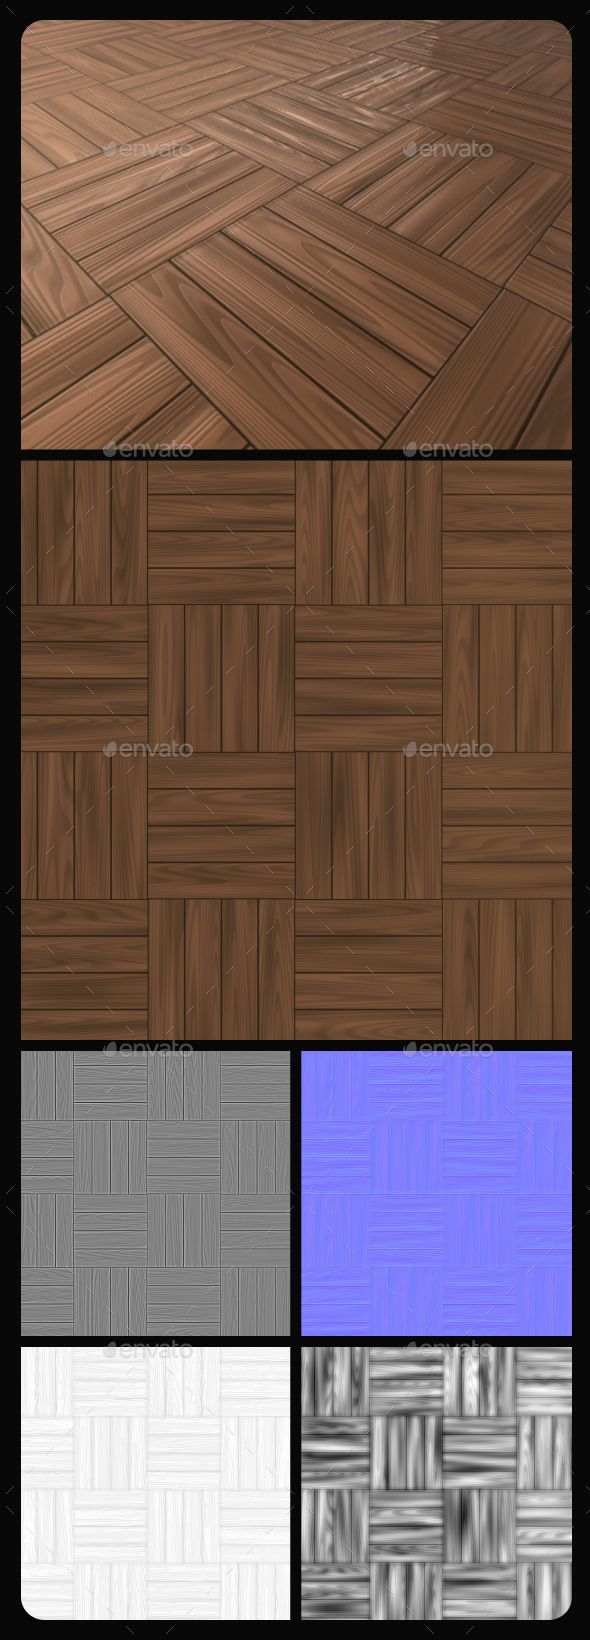 Wood Tile Texture - 3DOcean Item for Sale